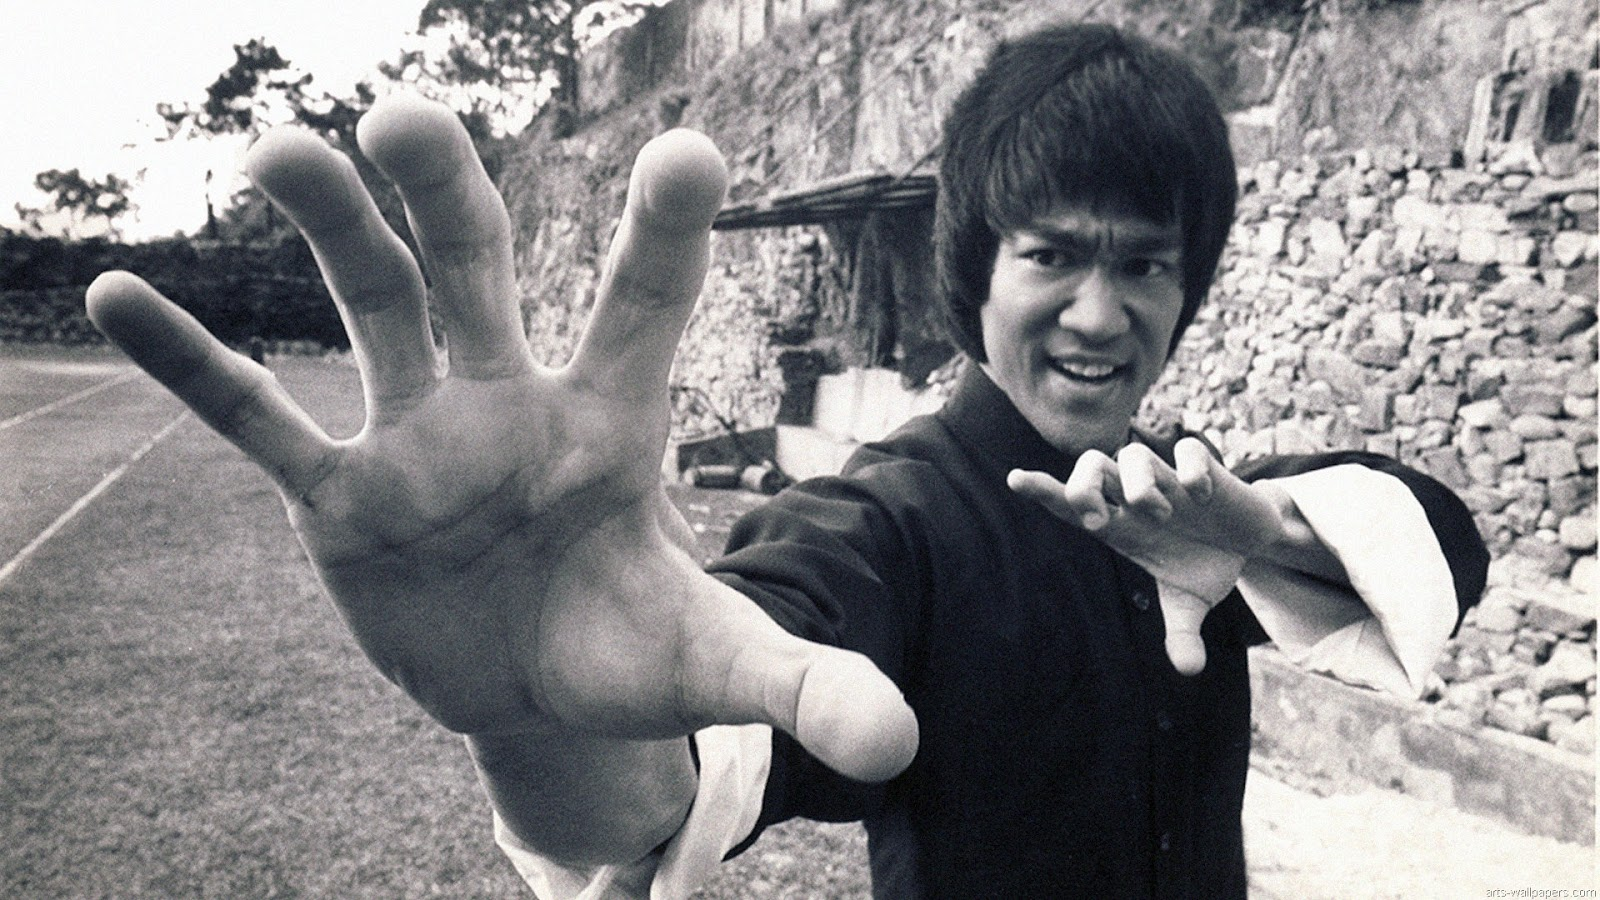 Bruce lee Hd Wallpapers_2.jpg